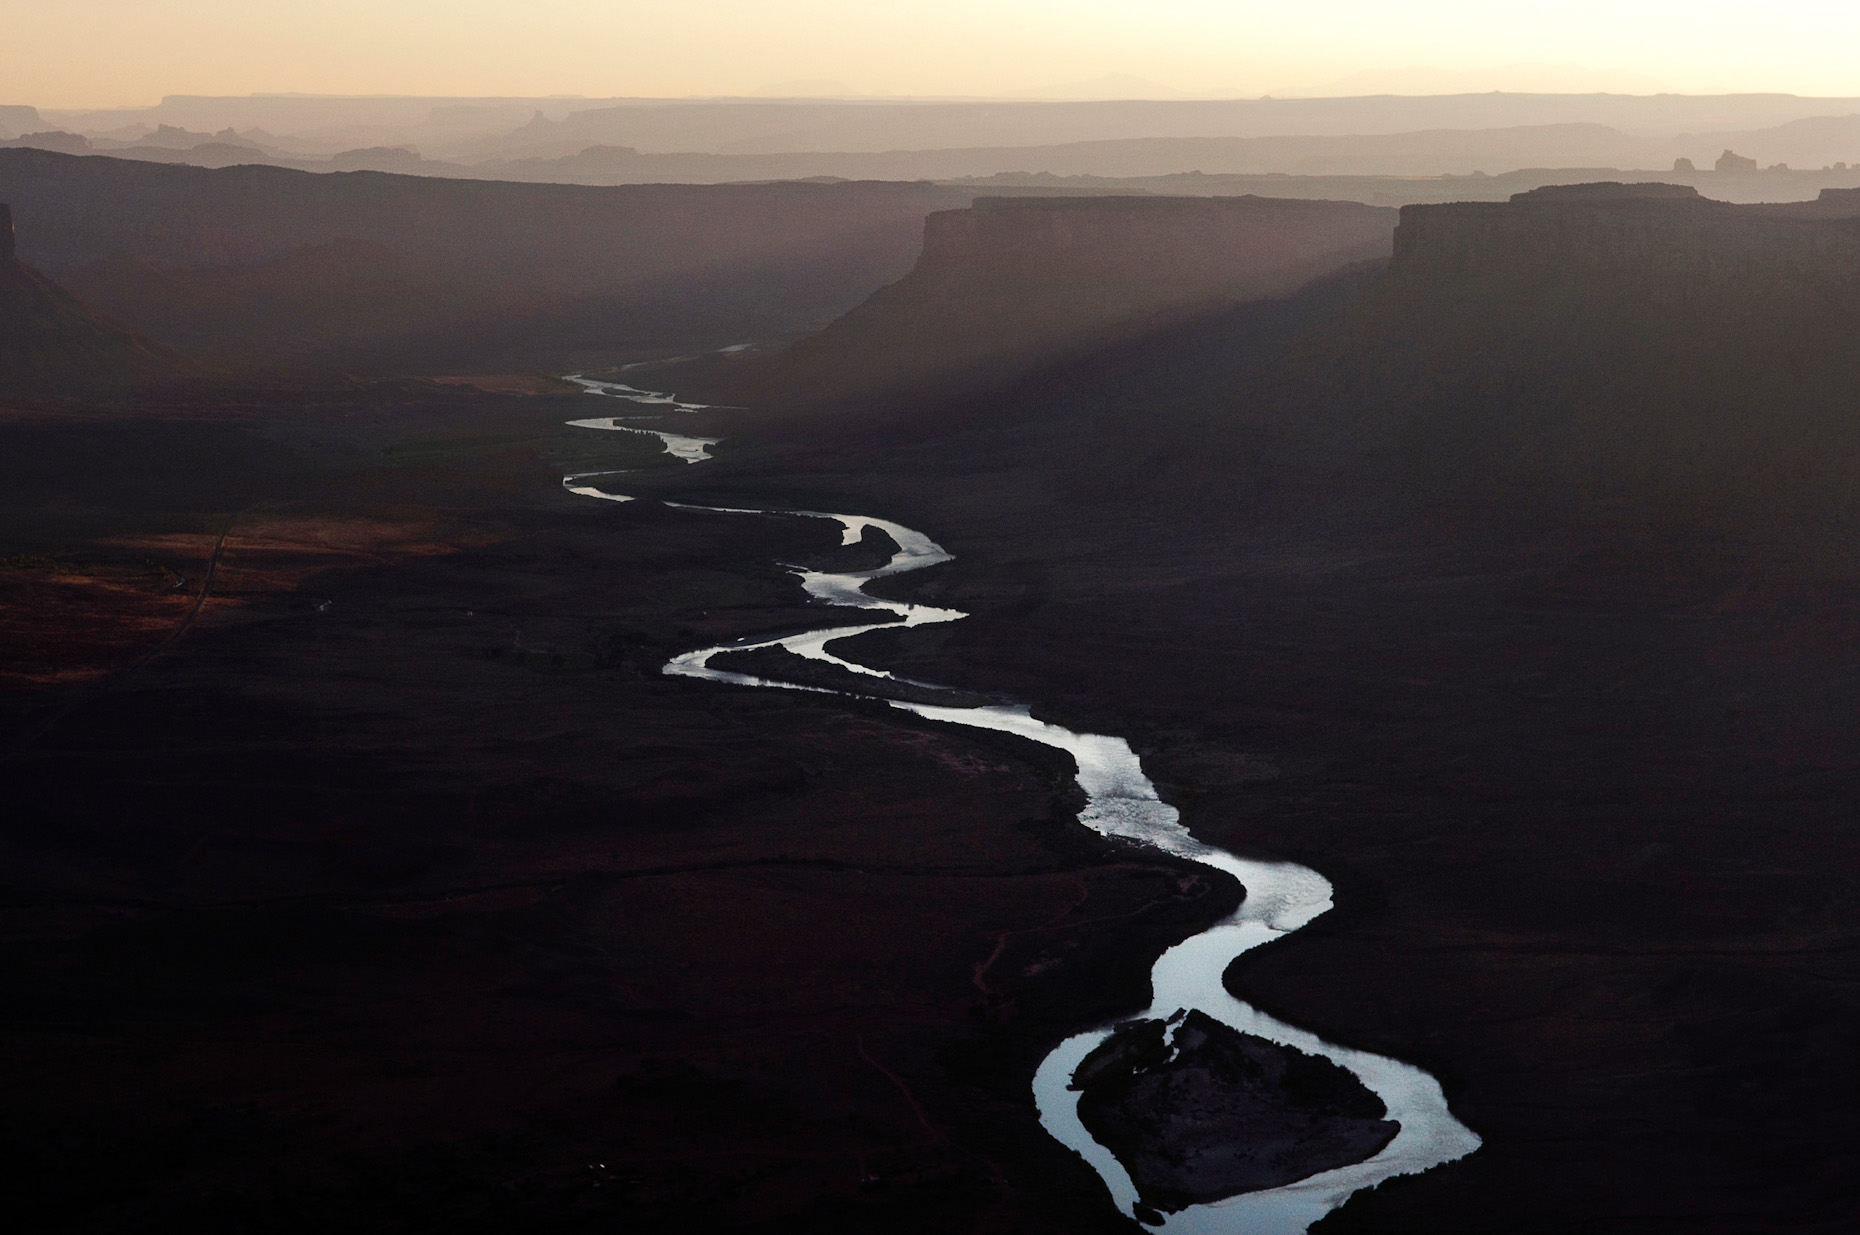 Pete_McBride_Colorado River_090928_56.jpg